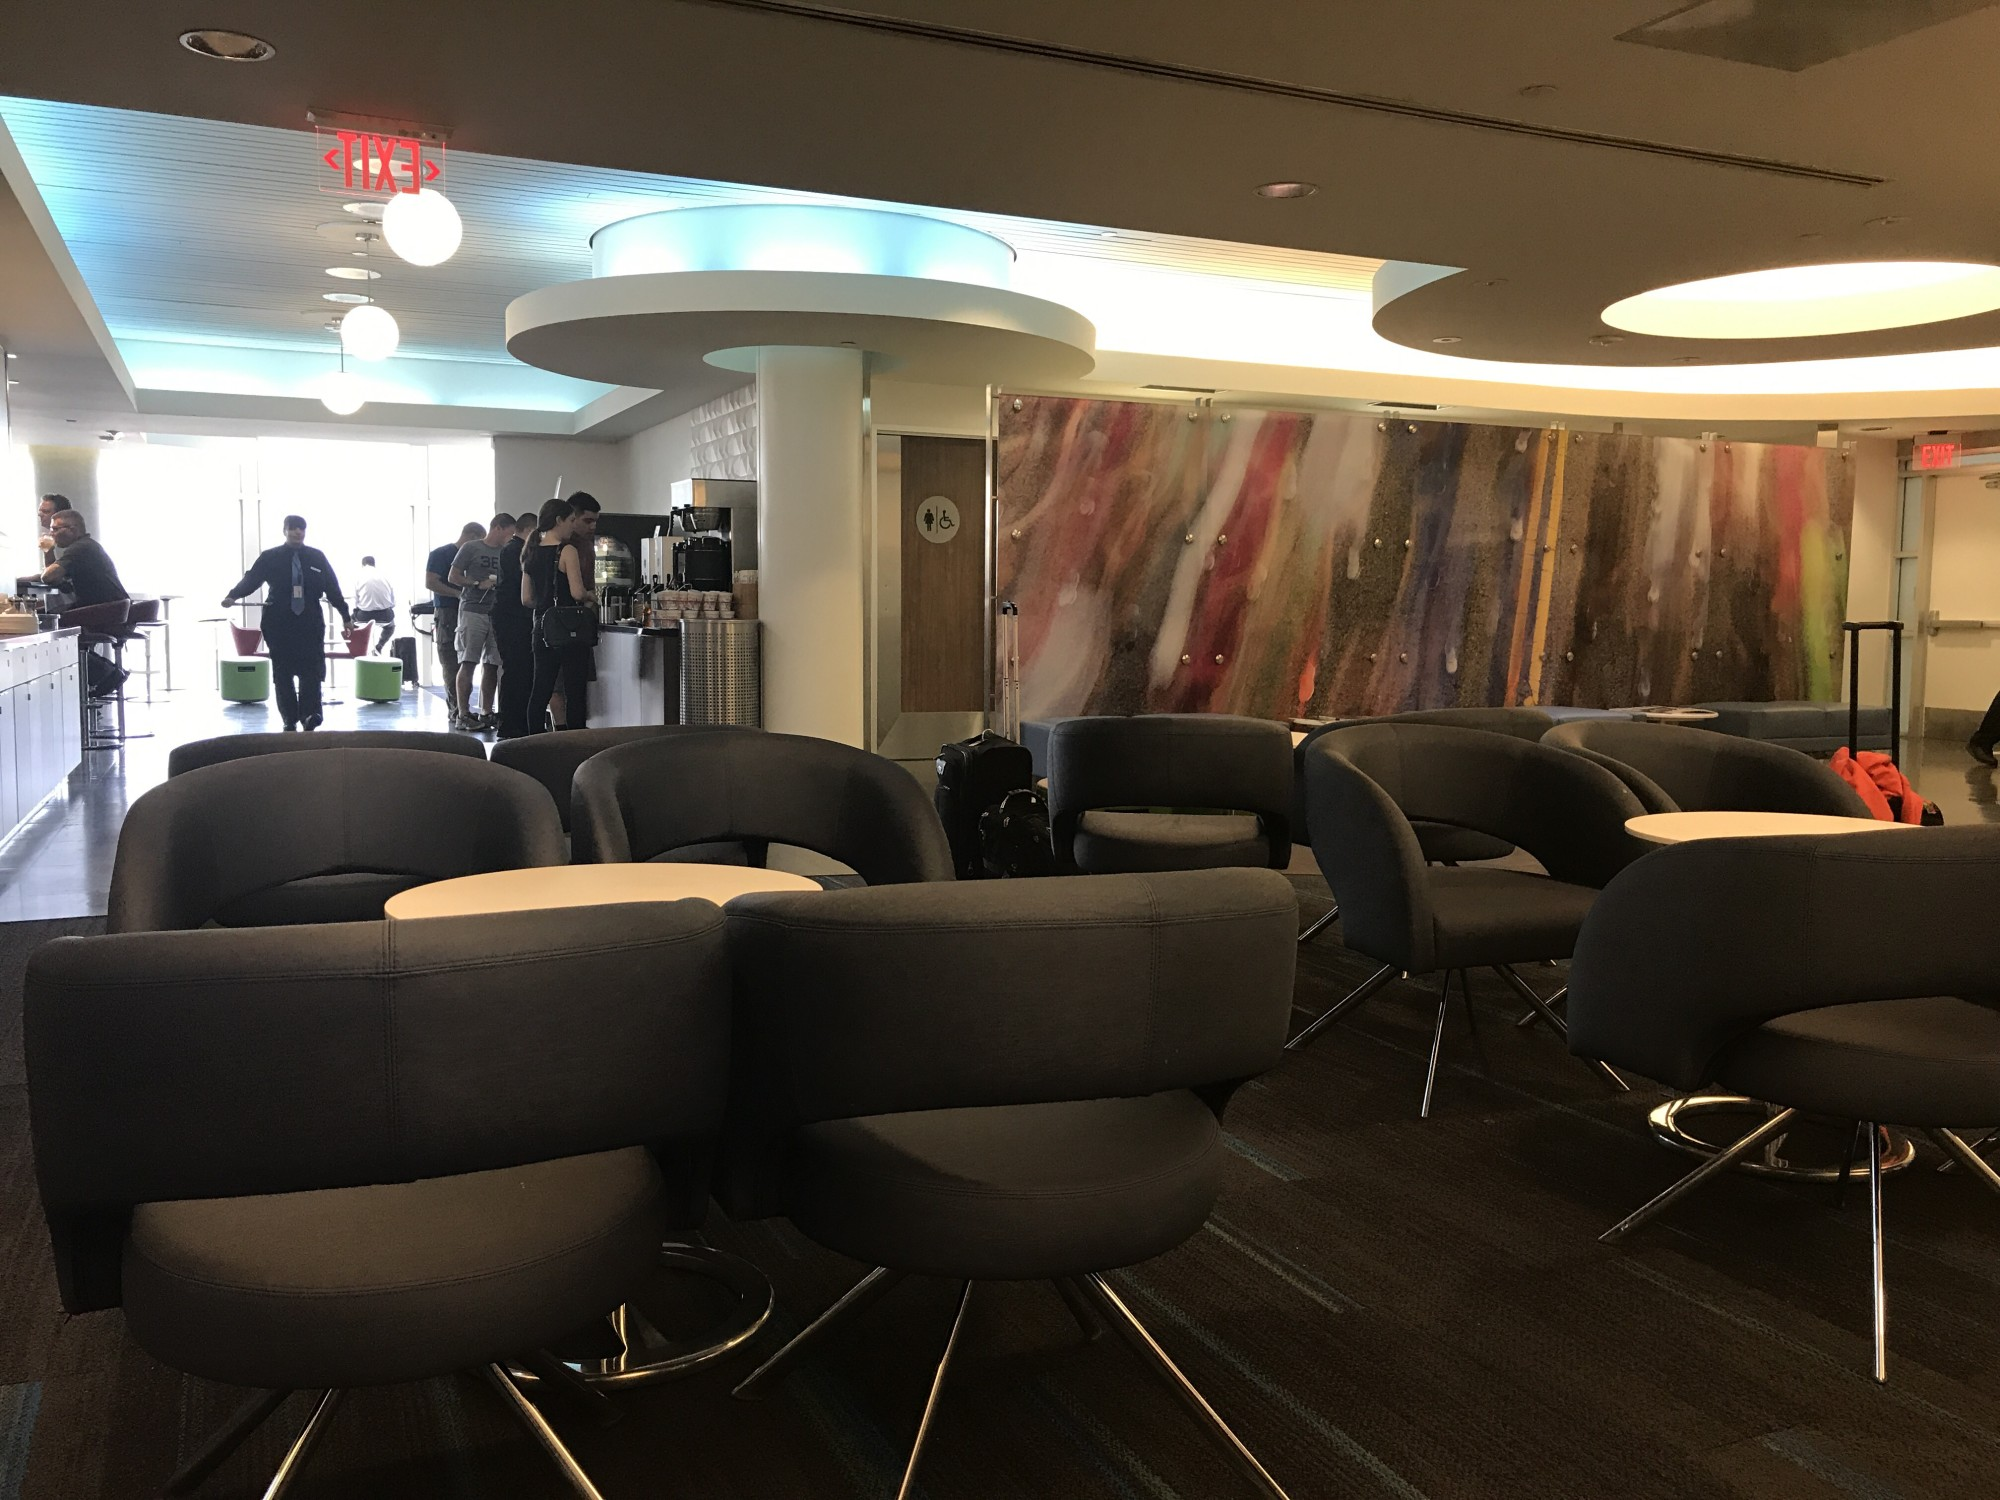 Lax Delta Air Lines Delta Sky Club South Reviews